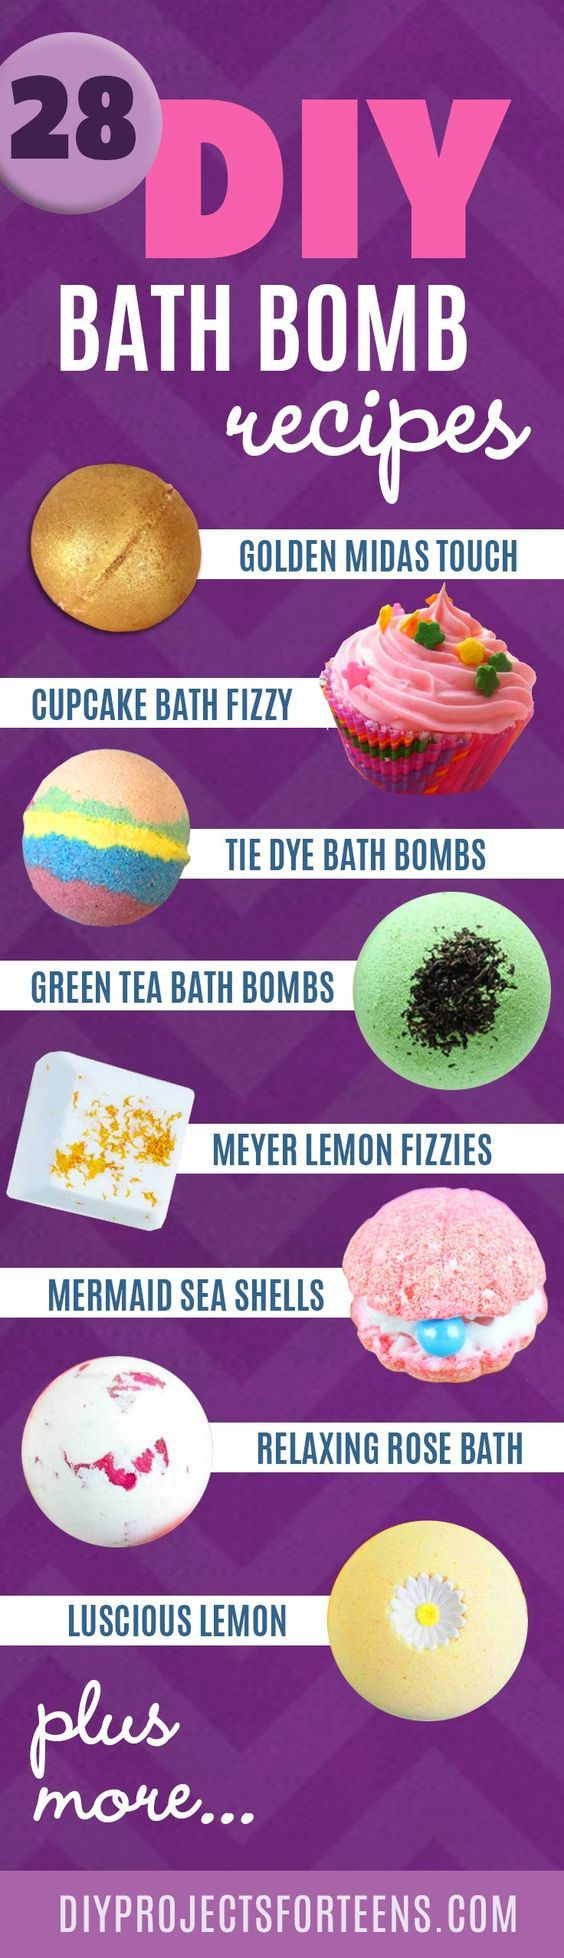 The 28 Most Fabulous DIY Bath Bomb Recipes Ever